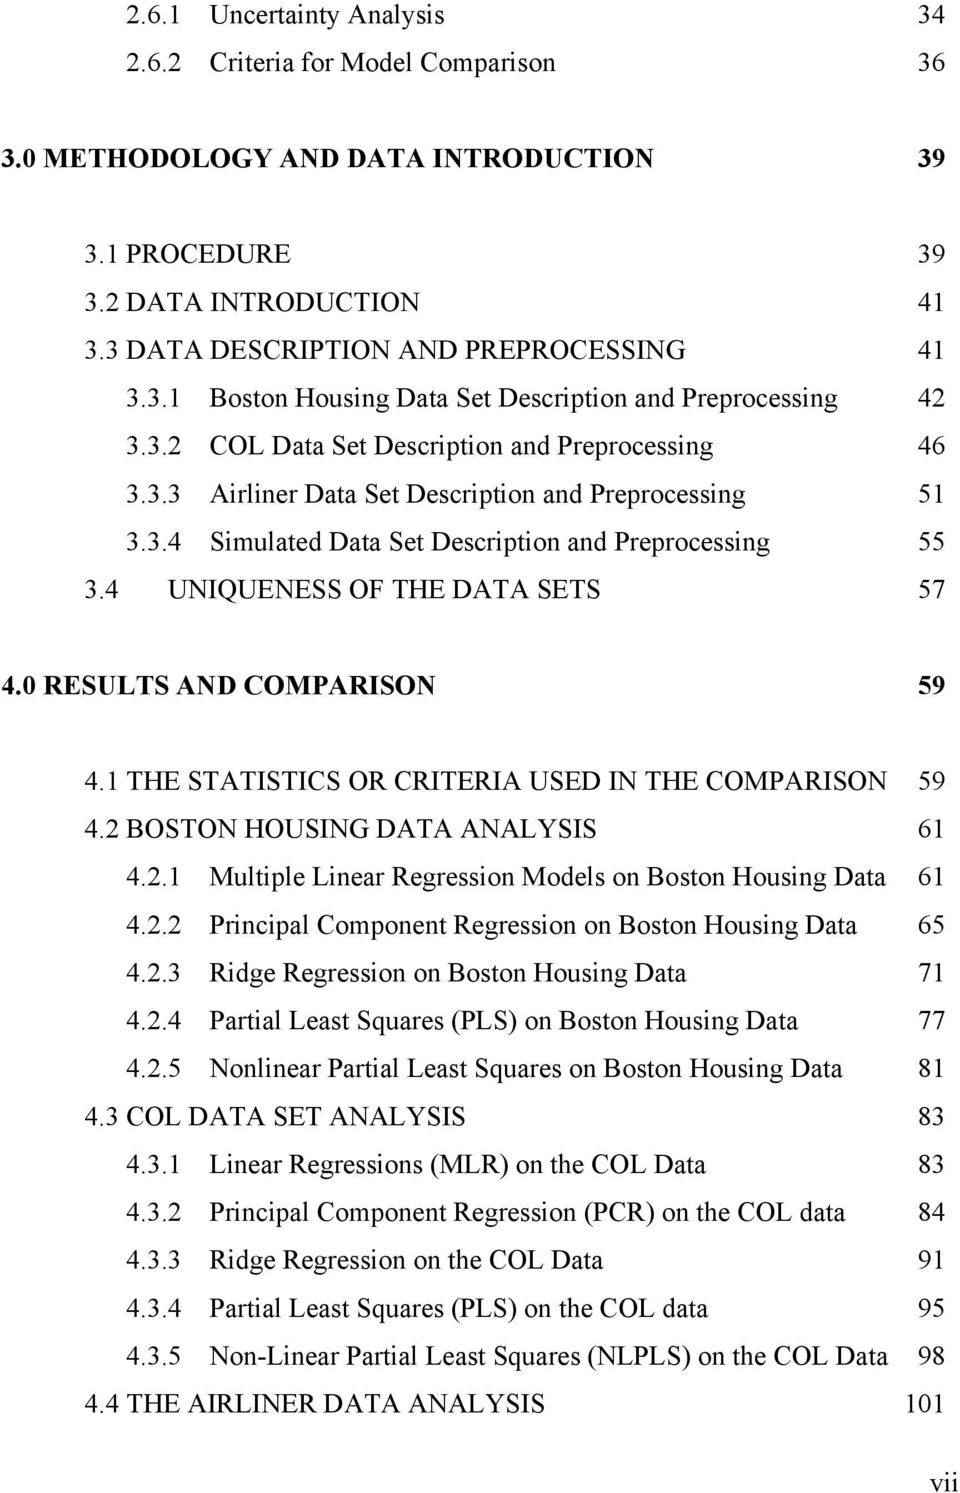 4 UNIQUENESS OF THE DATA SETS 57 4.0 RESULTS AND COMPARISON 59 4.1 THE STATISTICS OR CRITERIA USED IN THE COMPARISON 59 4.2 BOSTON HOUSING DATA ANALYSIS 61 4.2.1 Multiple Linear Regression Models on Boston Housing Data 61 4.